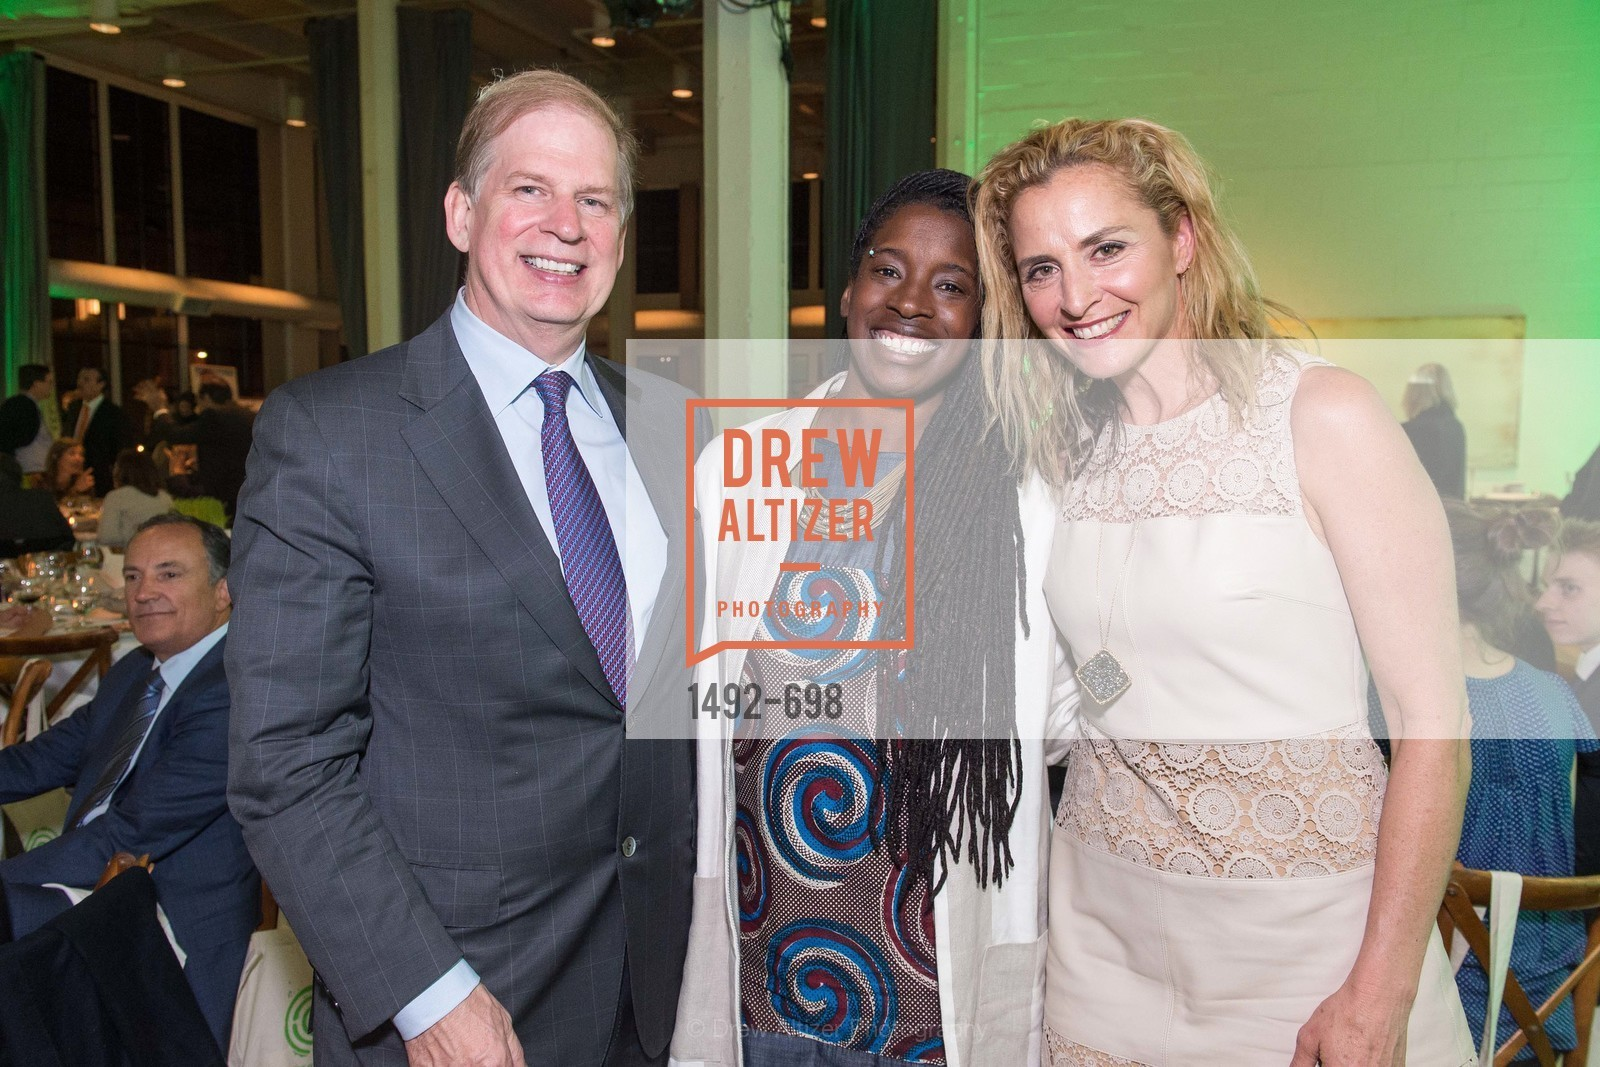 Robert Fetherstonehaugh, Pandora Thomas, Ami Aronson, EWG's 6th Annual Earth Dinner, US, May 5th, 2015,Drew Altizer, Drew Altizer Photography, full-service agency, private events, San Francisco photographer, photographer california